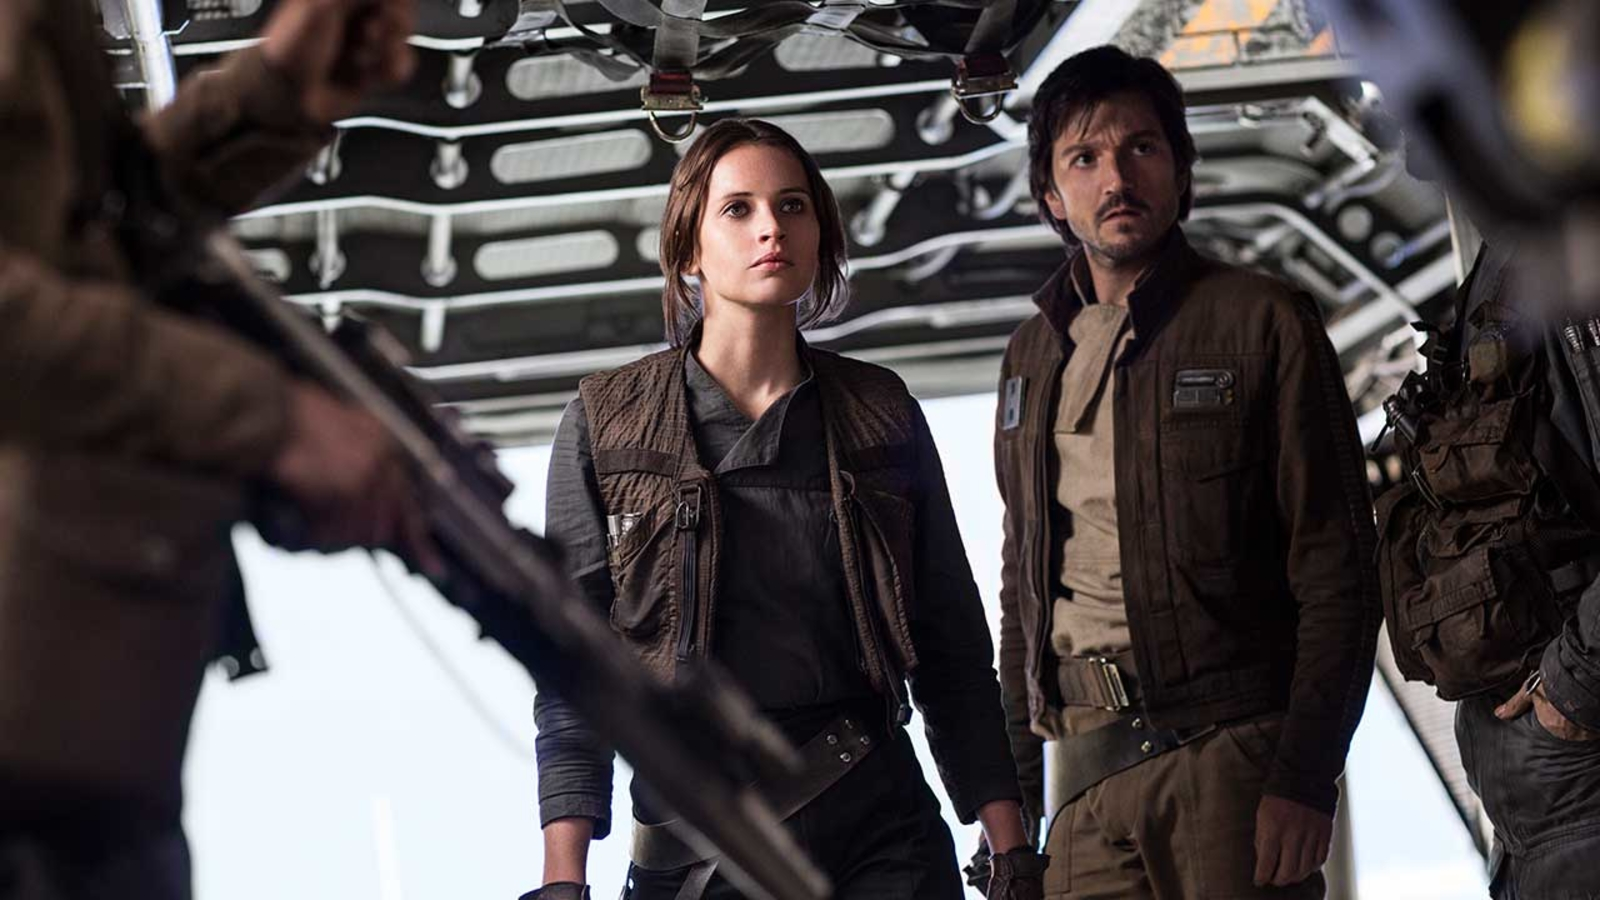 New Trailer For Highly Anticipated Star Wars Rogue One Released 6abc Philadelphia